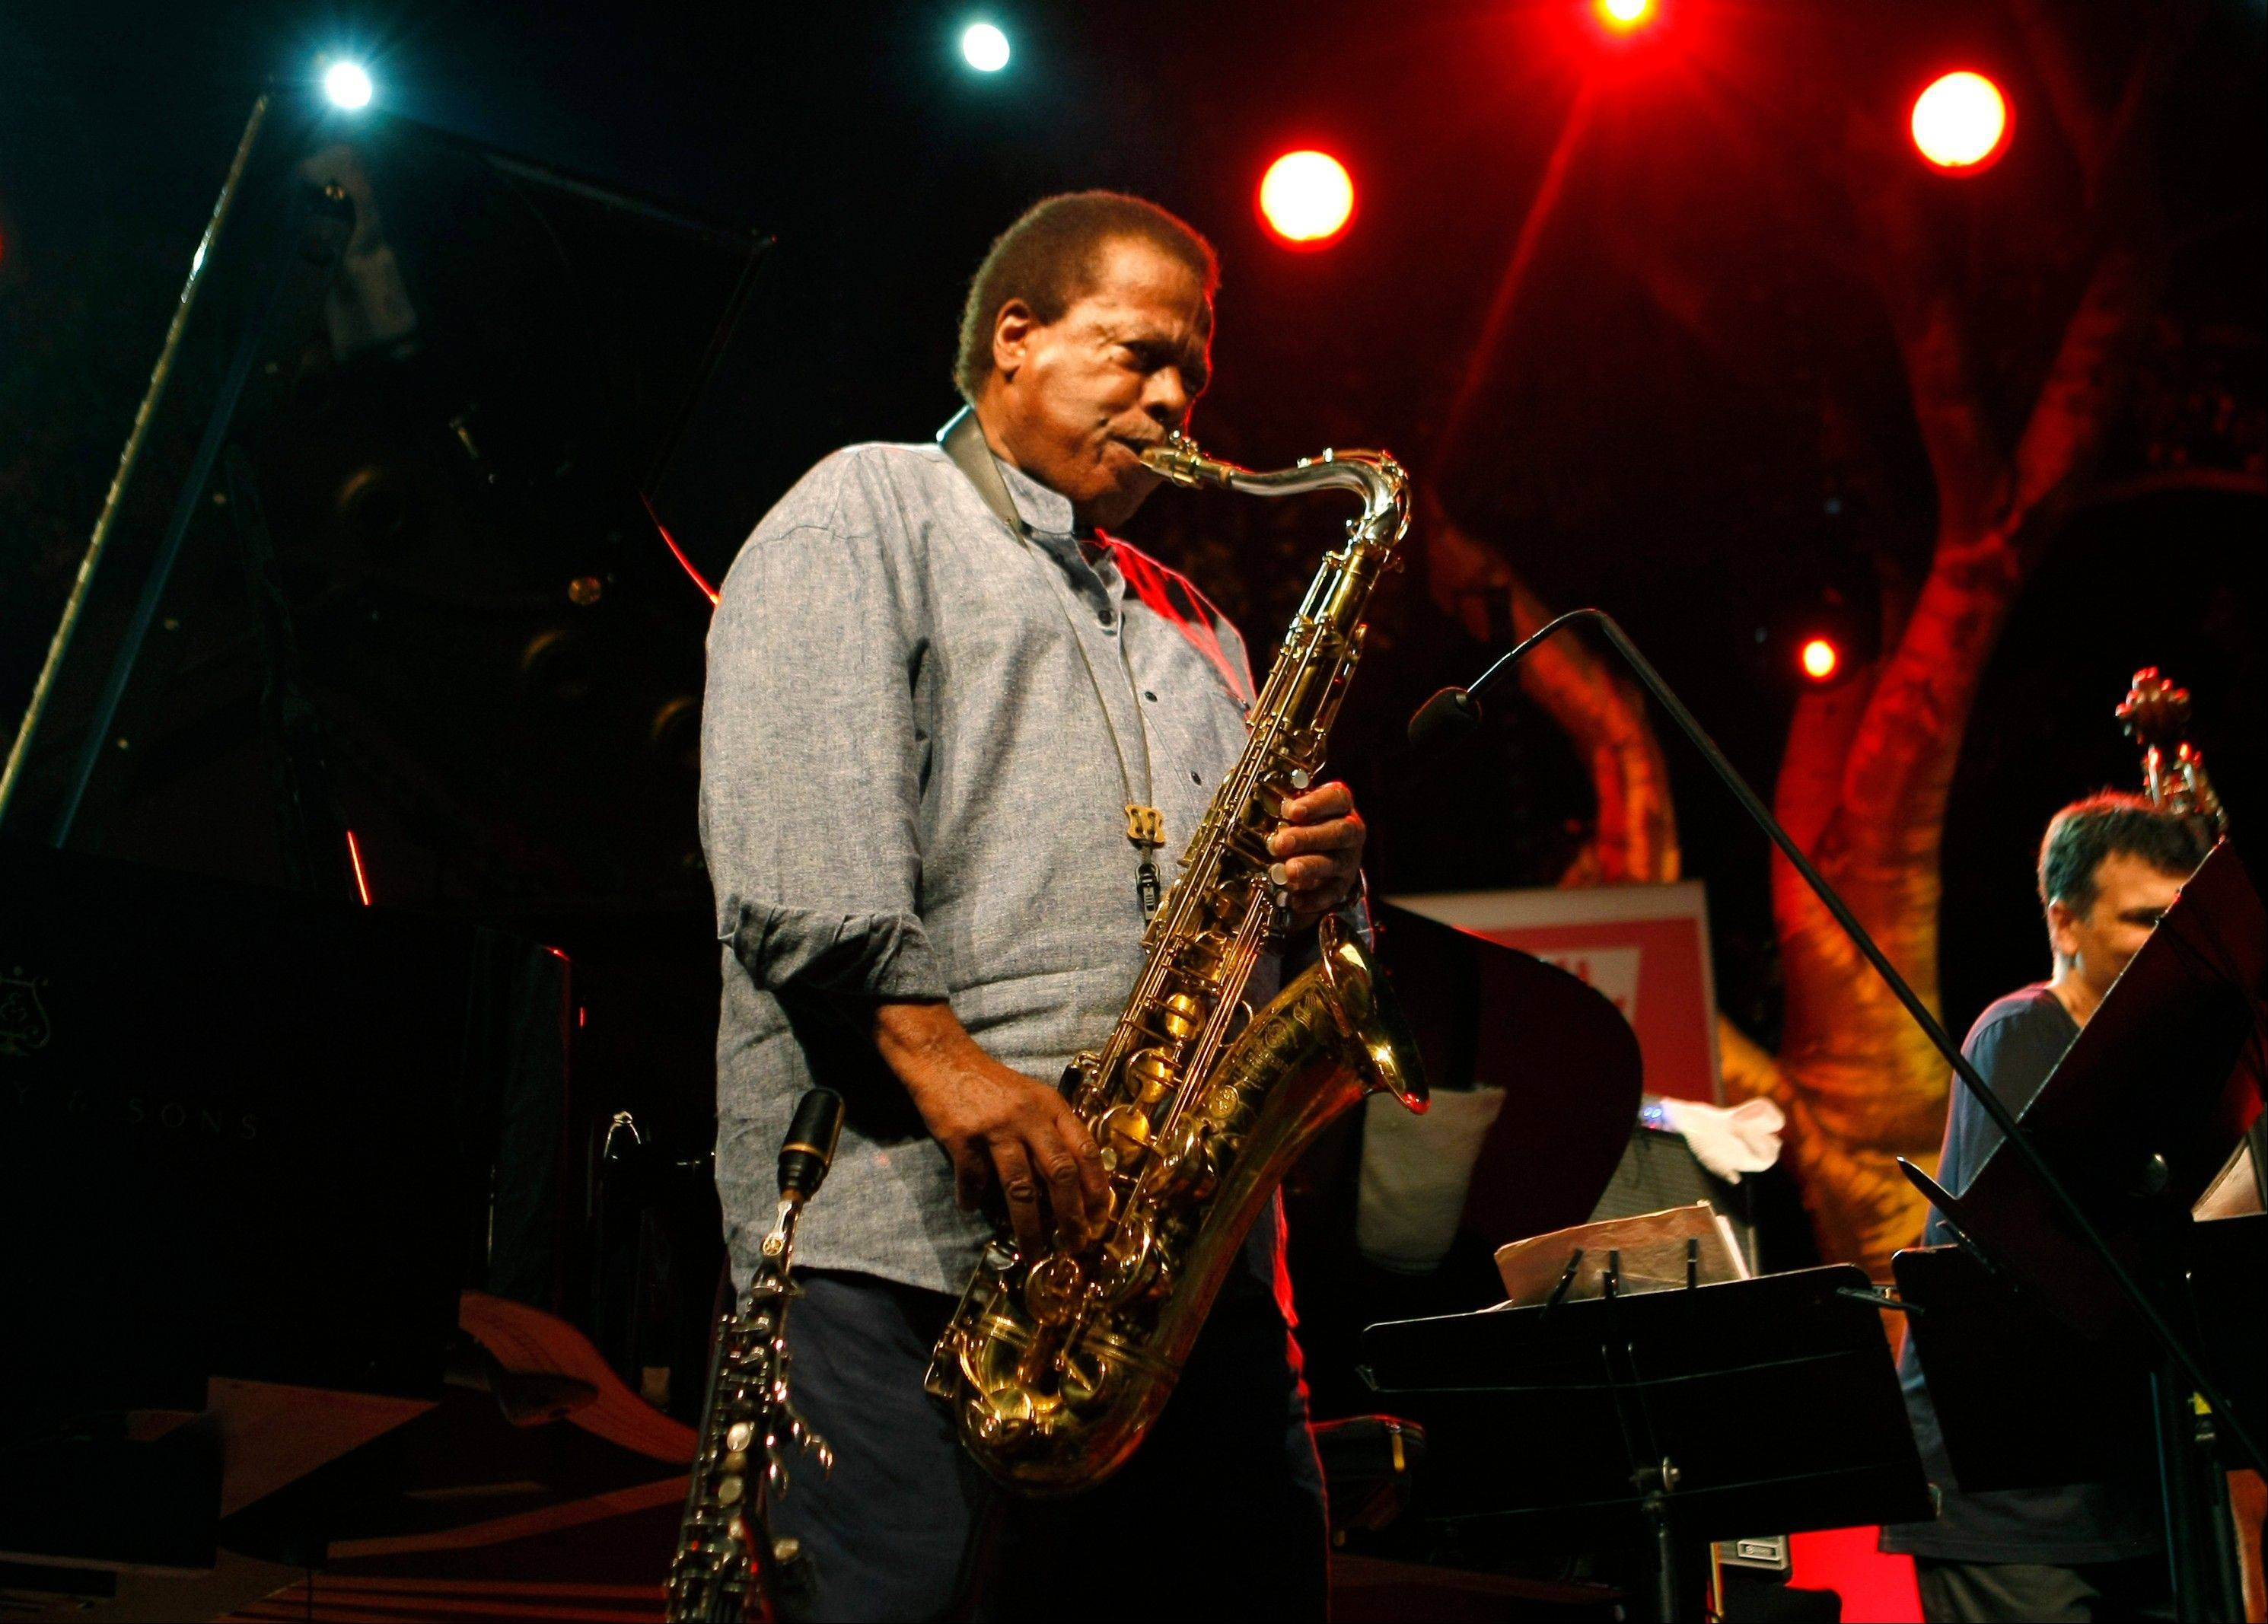 Jazz saxophonist Wayne Shorter performing at the 5 Continents Jazz Festival, in Marseille, France. Shorter, who turned 80 recently is still going strong.